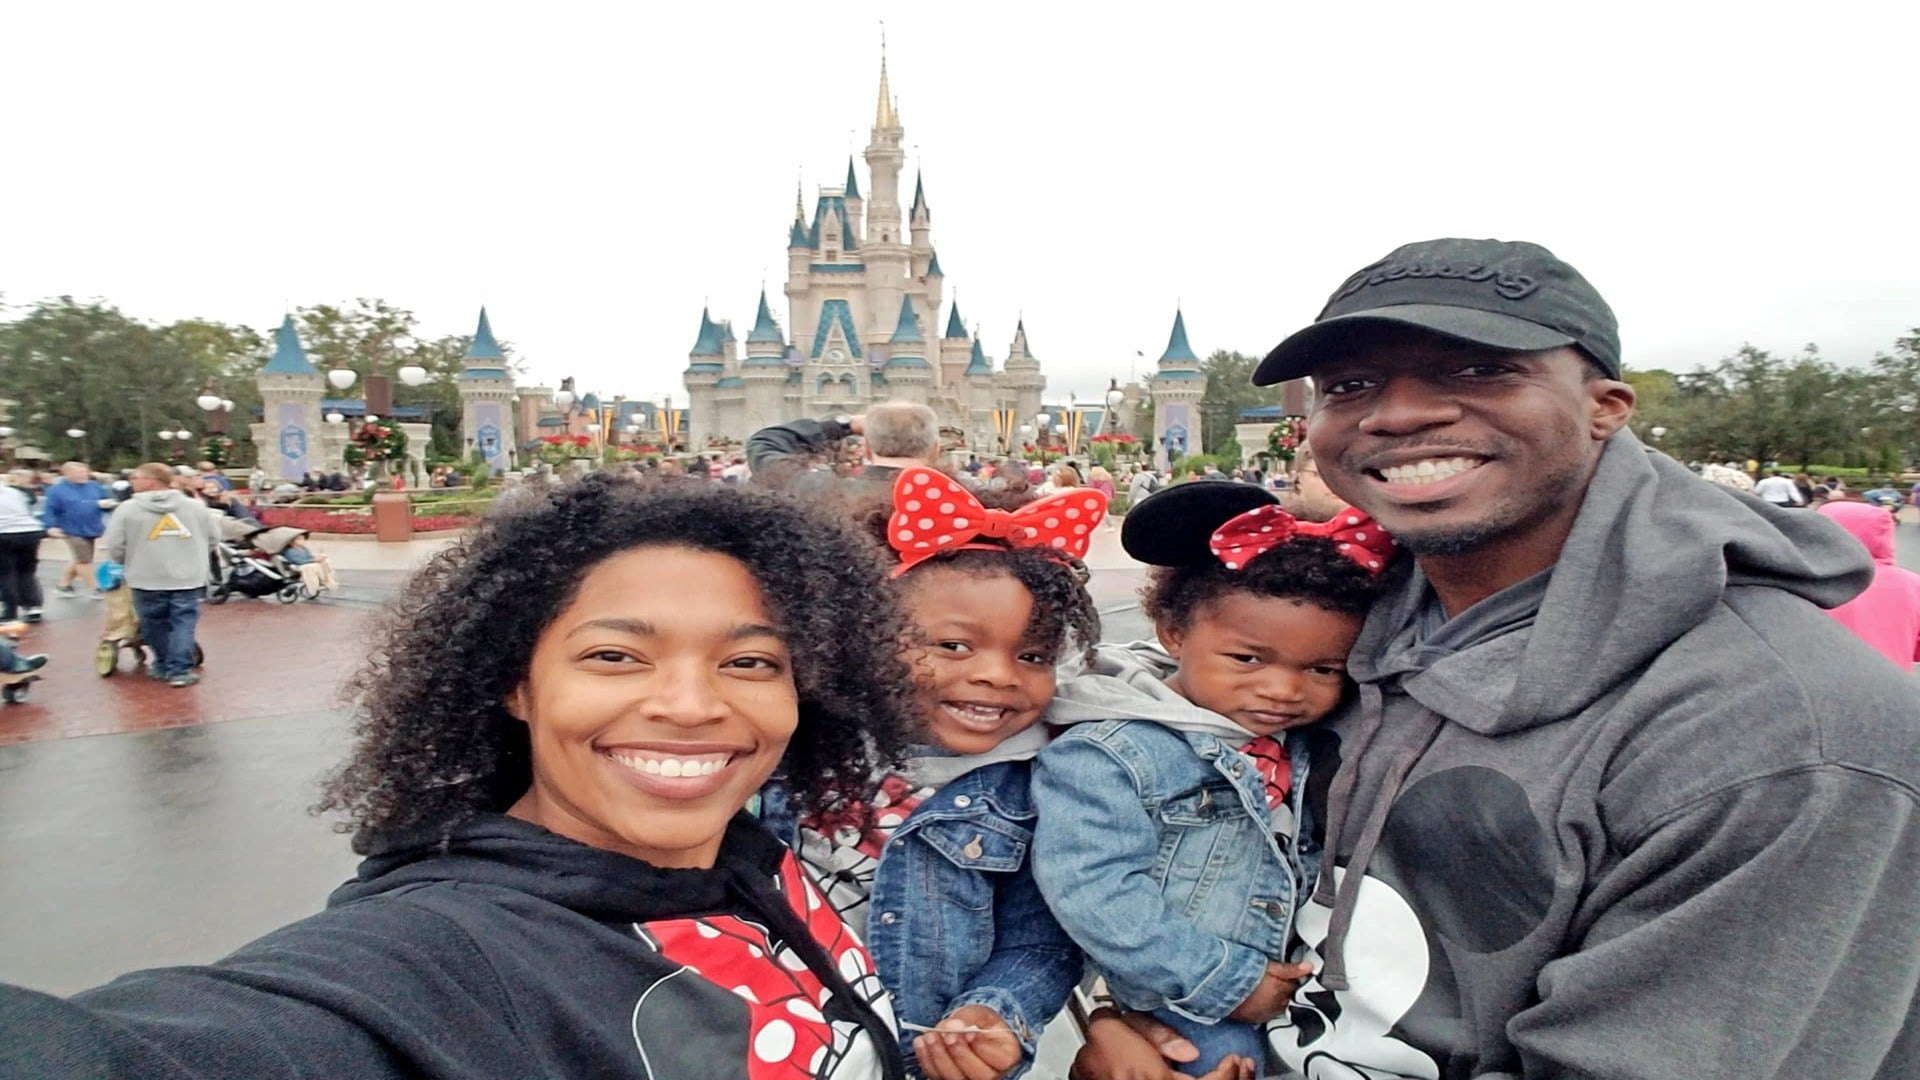 How My Family And I Enjoyed a Trip to Disney on a Budget